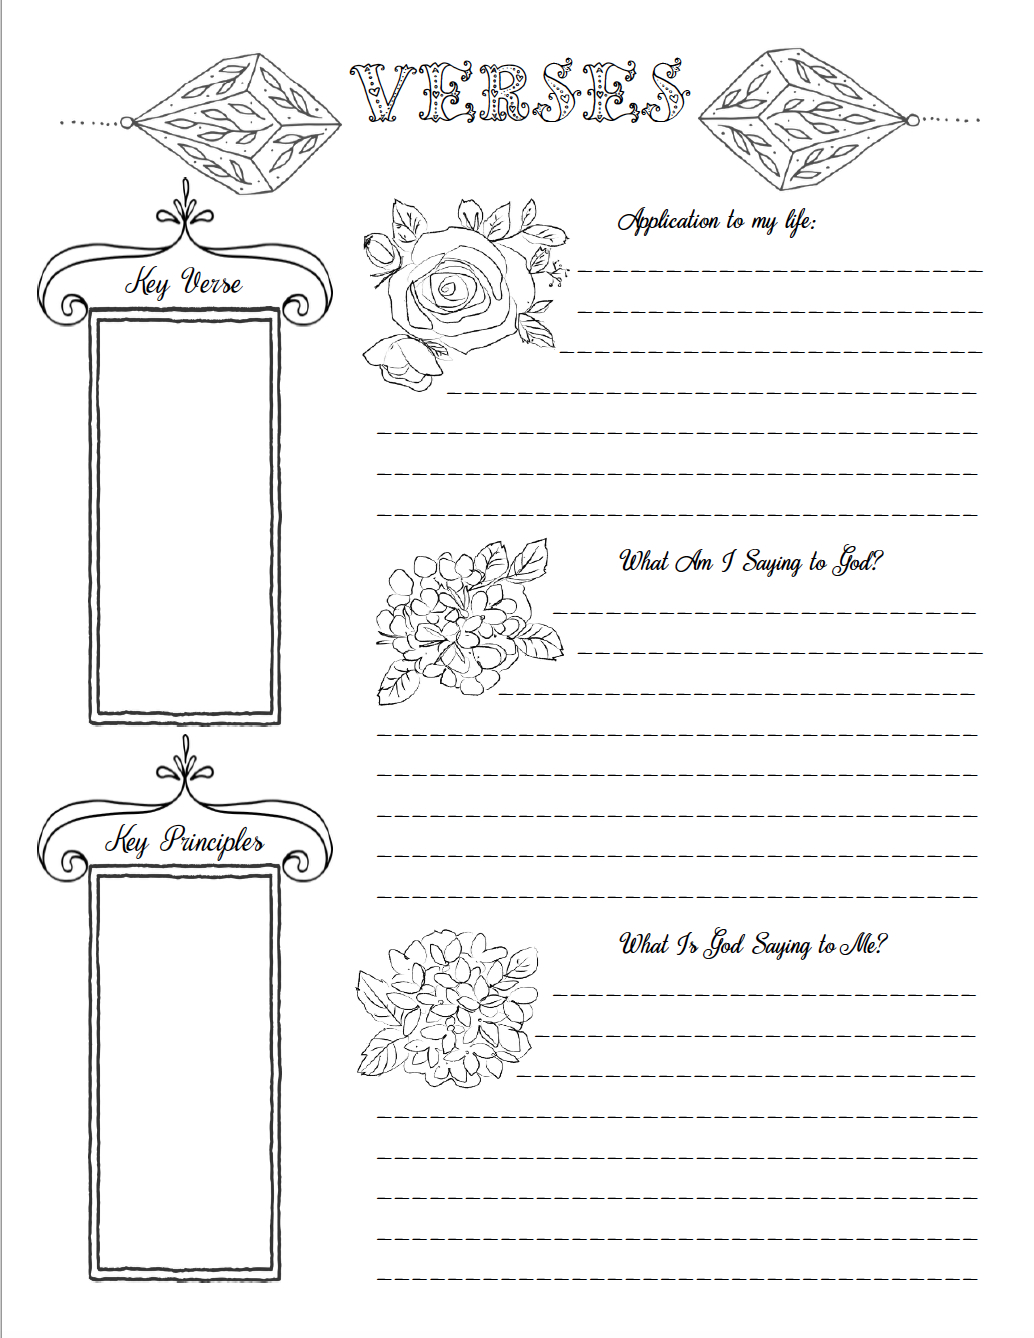 Free Bible Journaling Printables (Including One You Can Color!) - Free Bible Journaling Printables